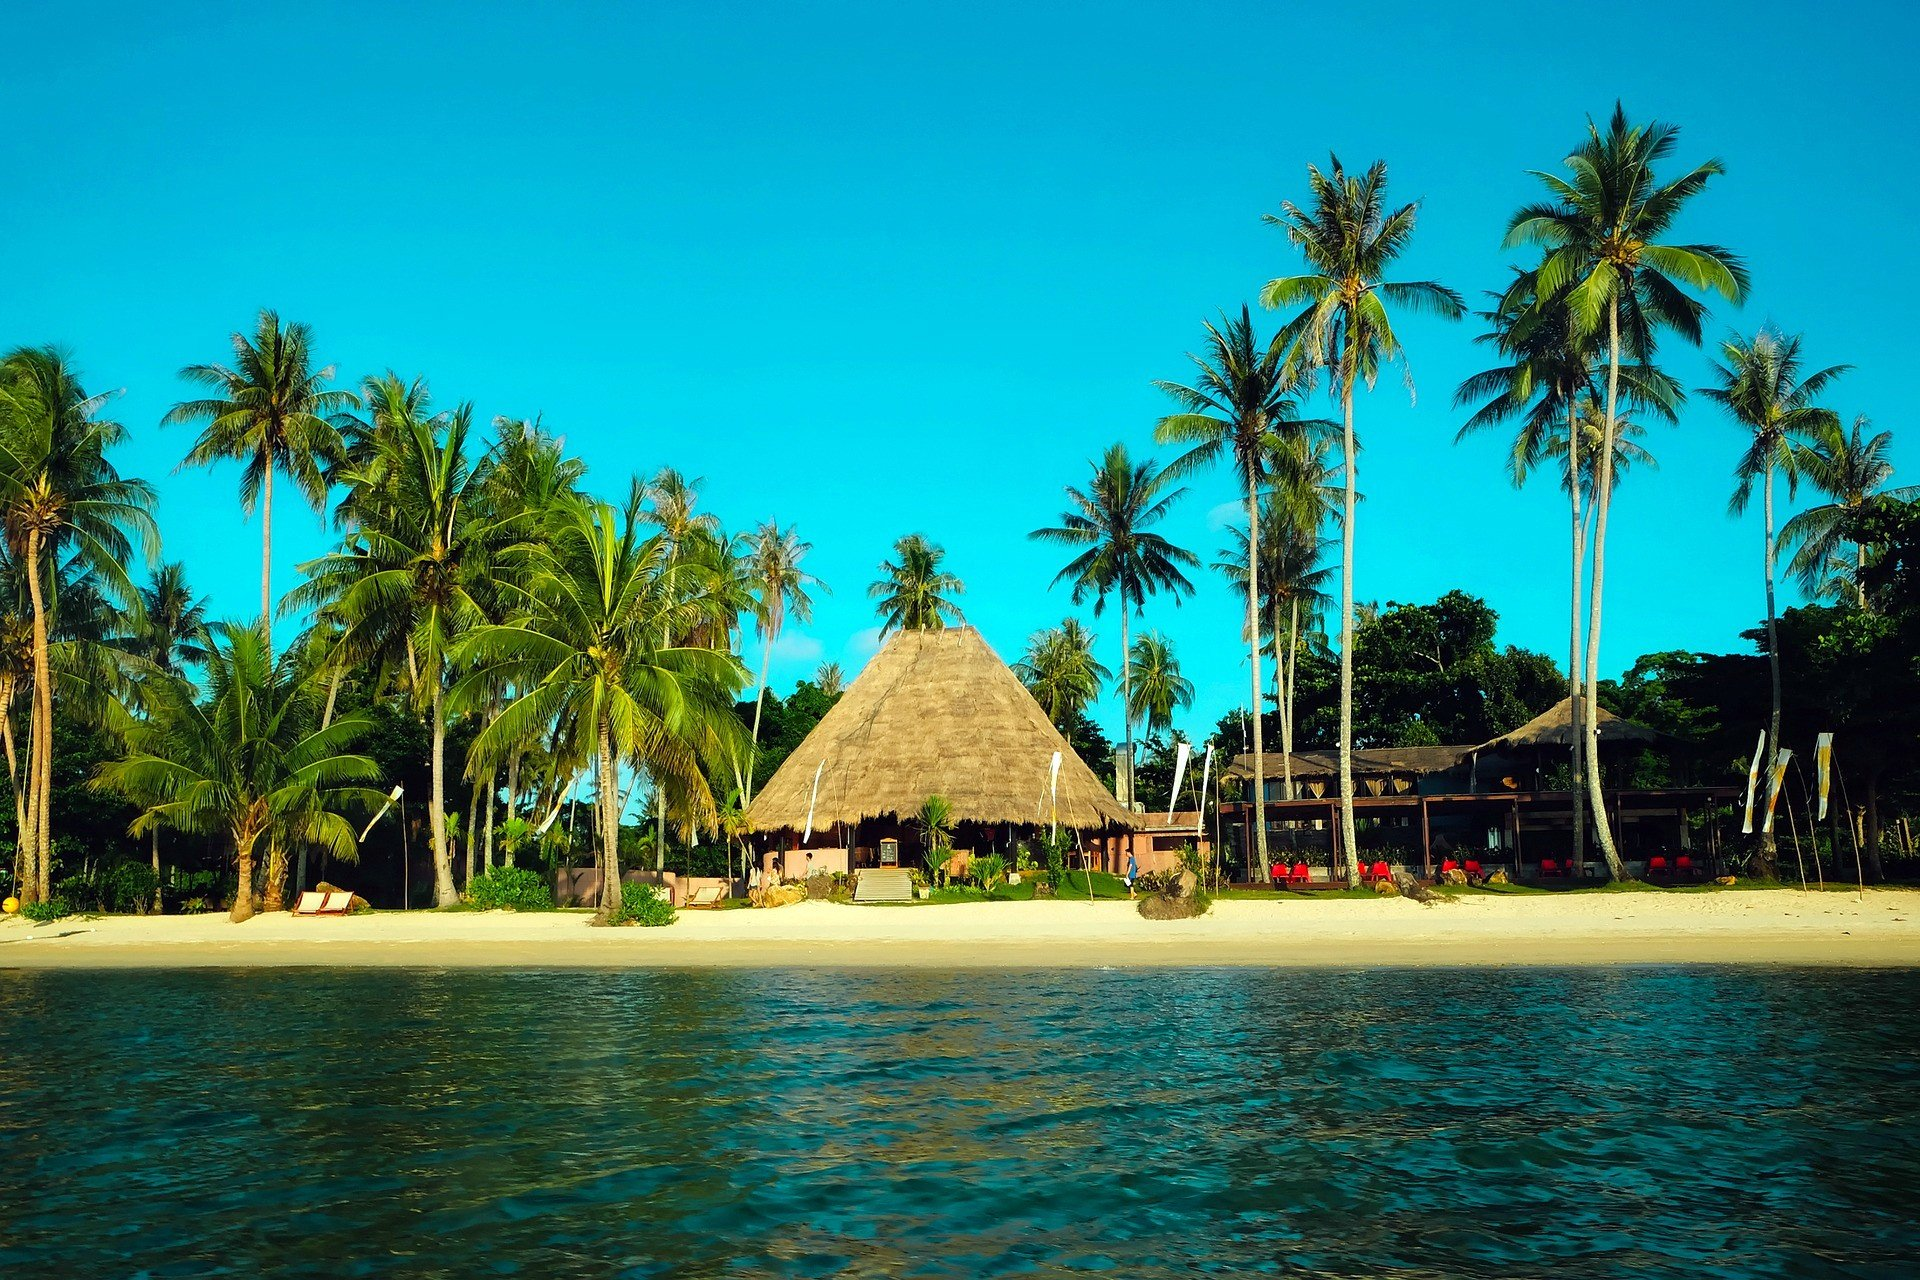 Koh Phayam is a great place to go for a relaxed beach holiday